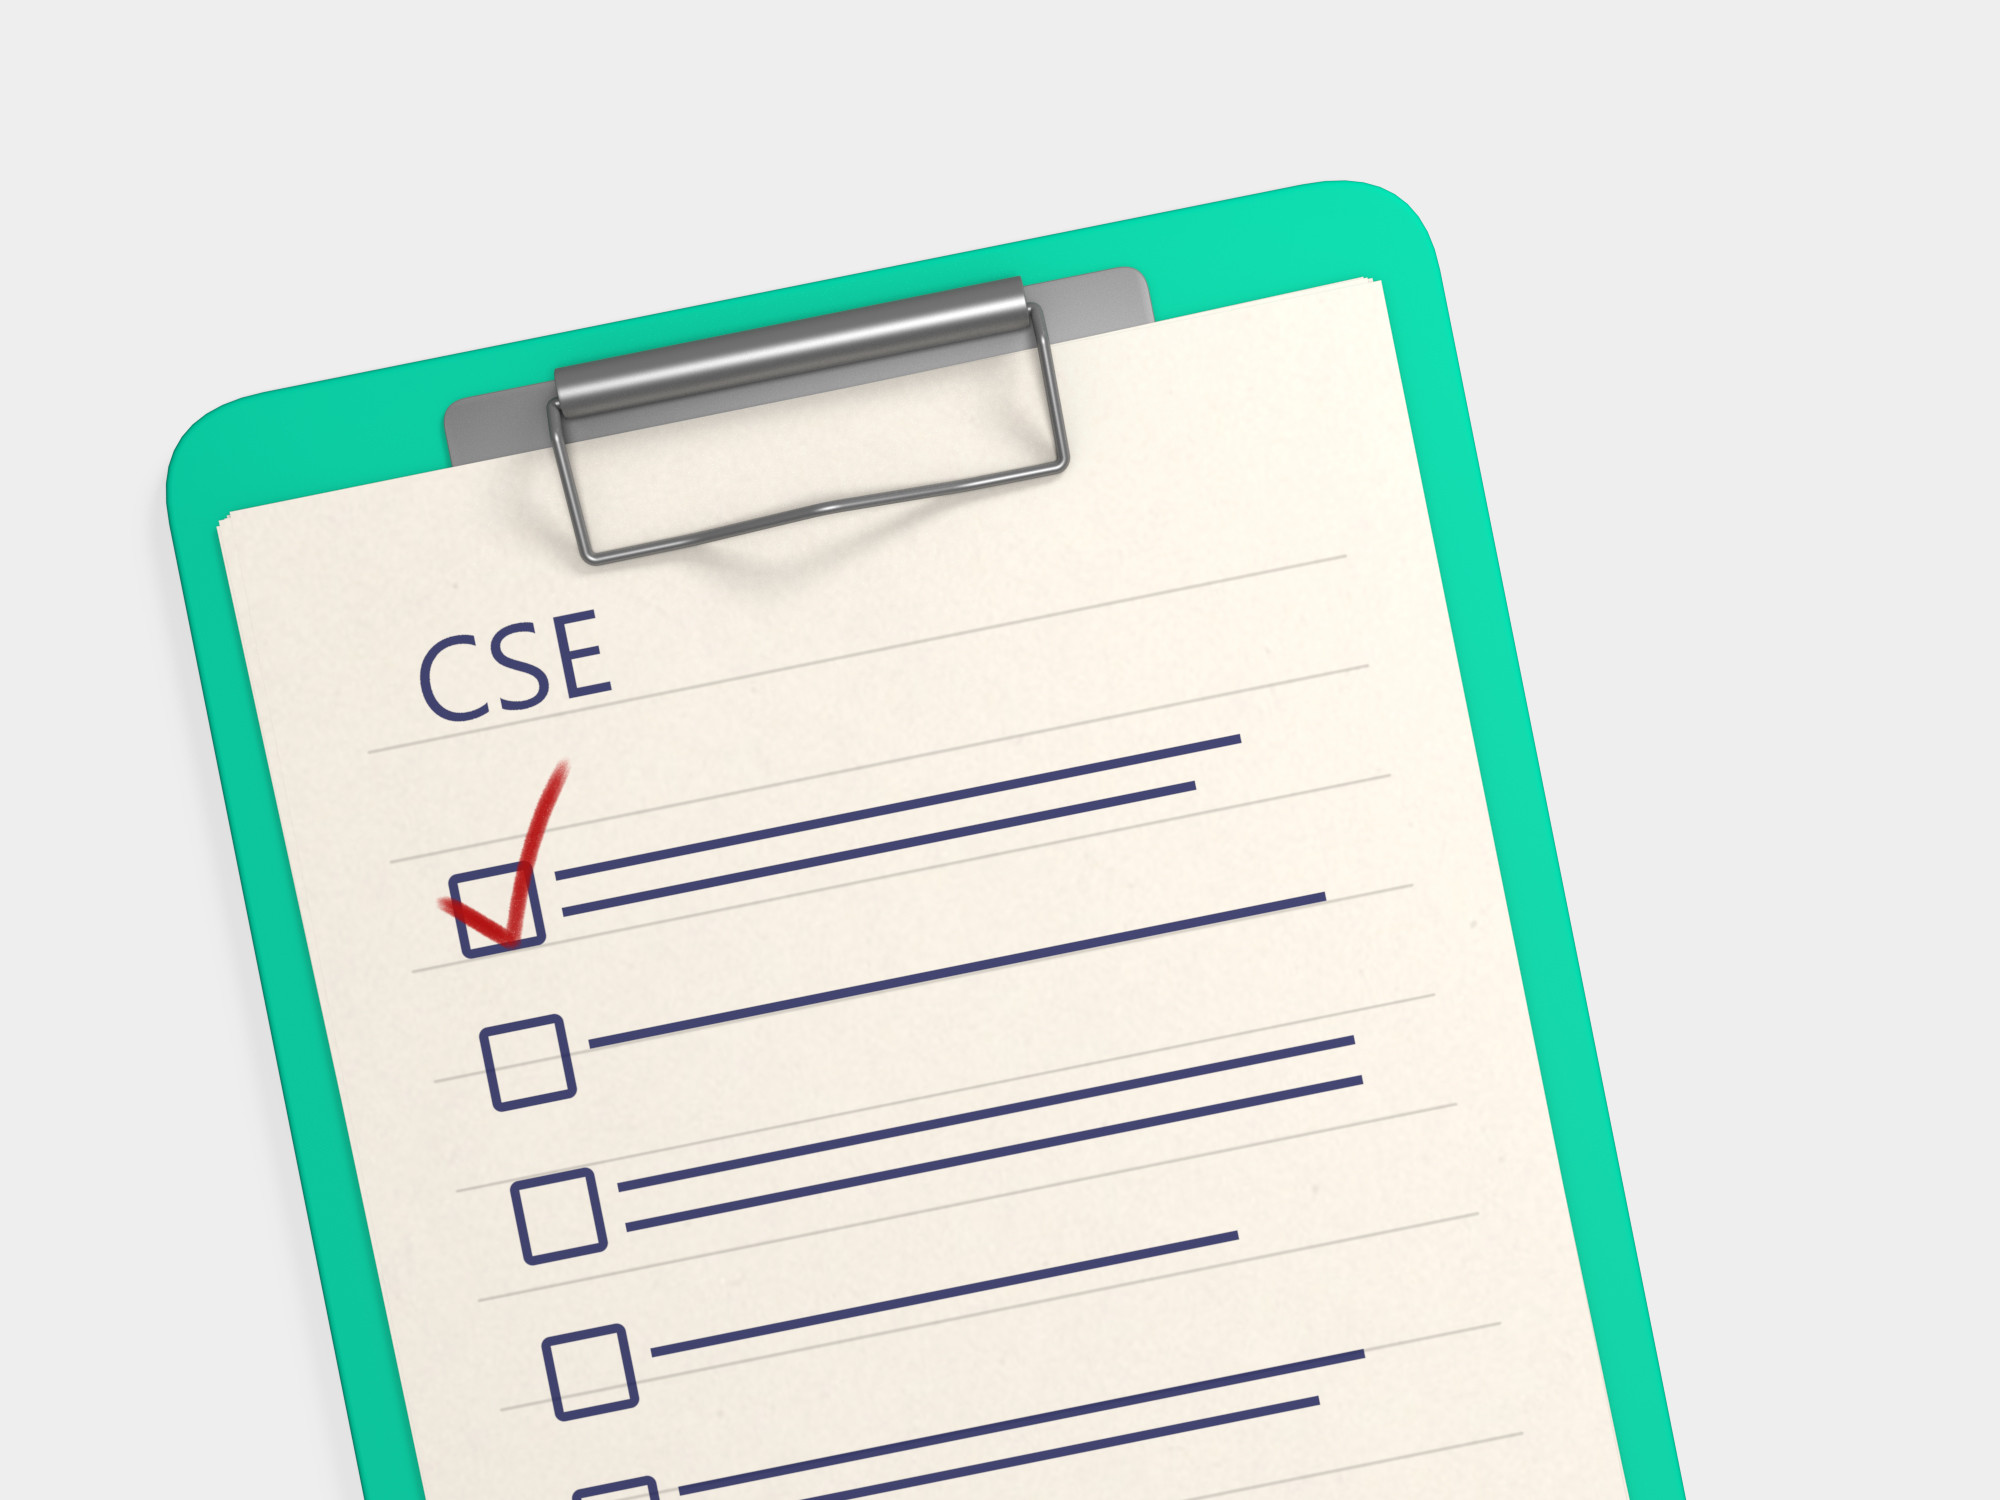 The 5 stages of creating a CSE